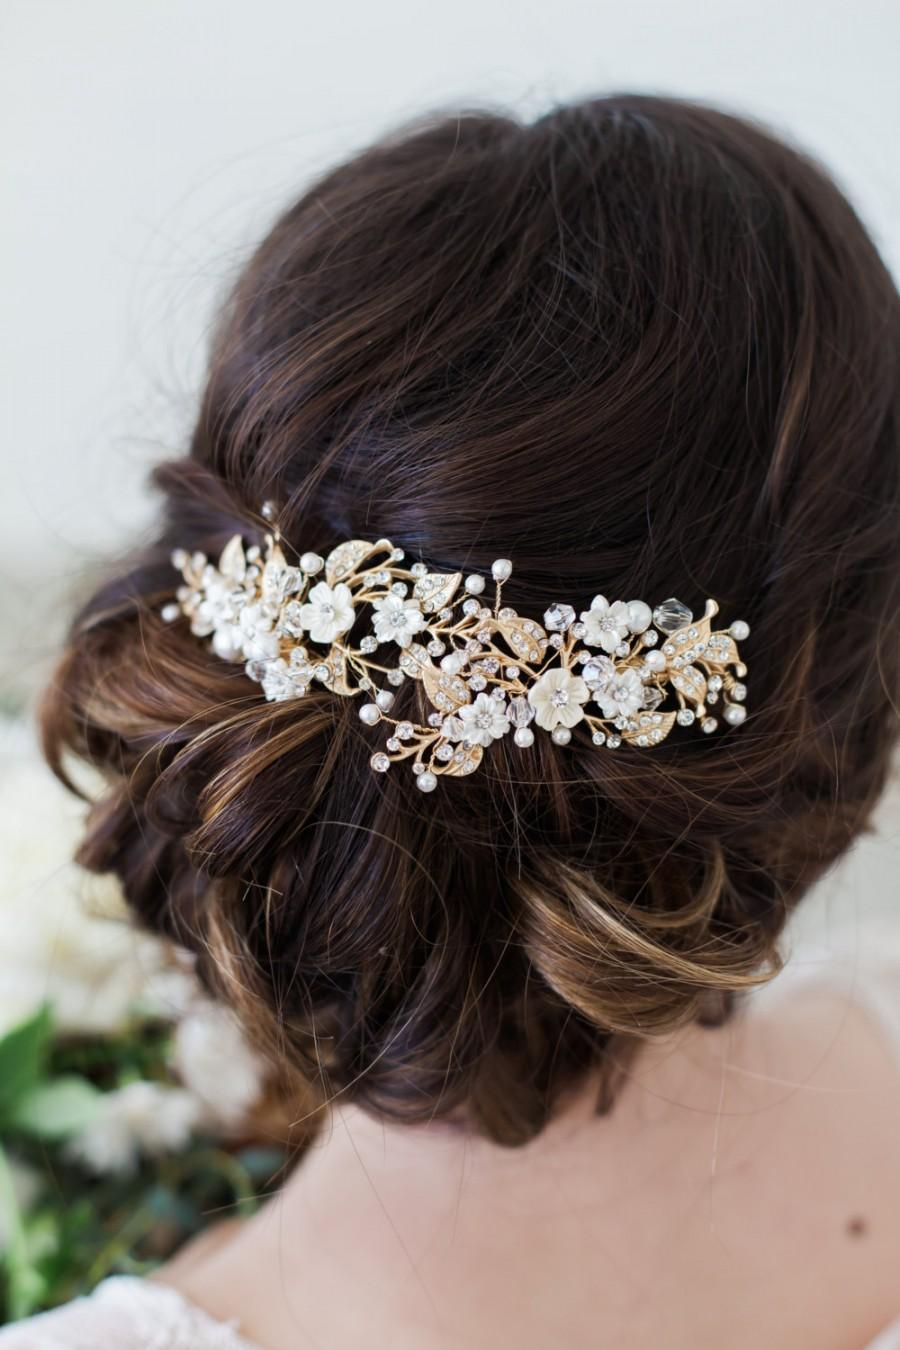 Prepare to pin your heart out. 24 Stunning Ways to Wear Flowers in Your Hair on Your Wedding Day Prepare to pin your heart out.